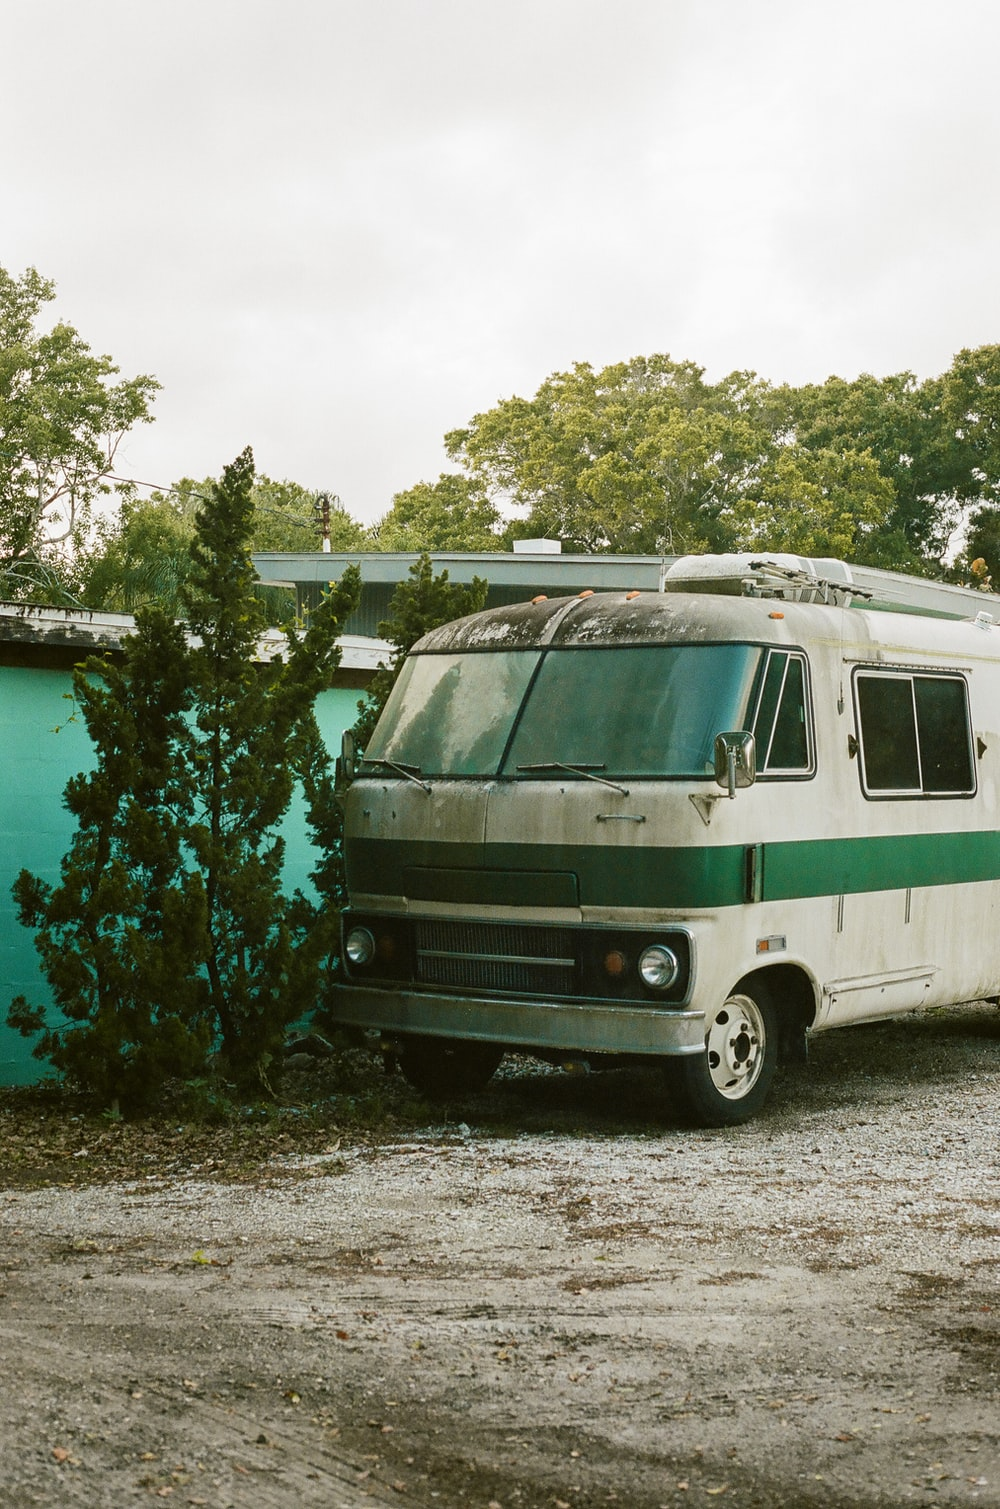 white and green rv trailer parked beside green trees during daytime